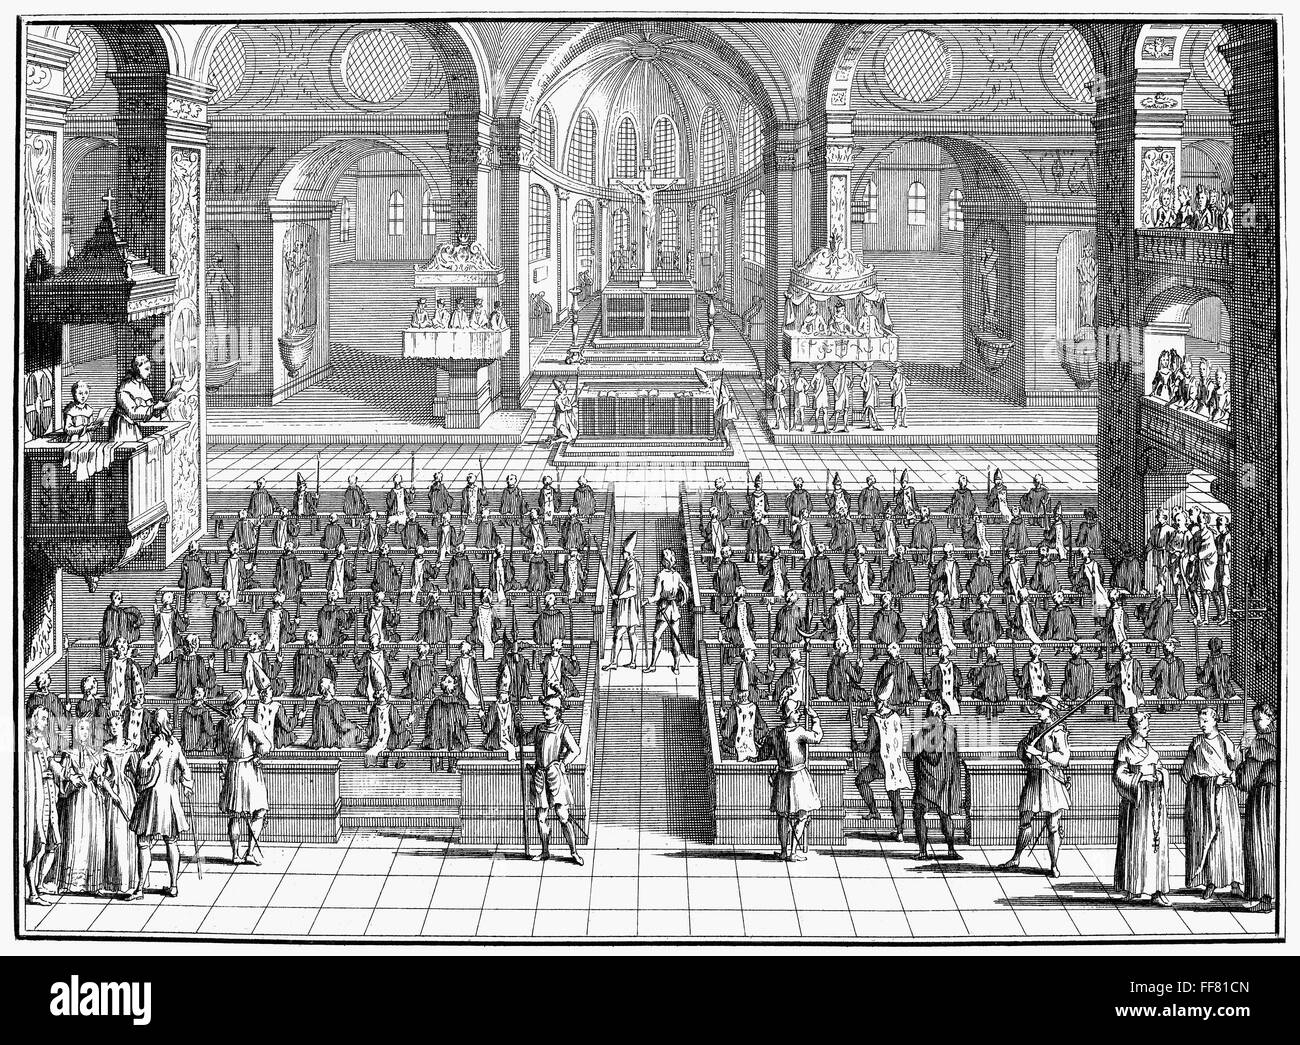 history of the spanish inquisition essay The inquisition just the word itself evokes, to the modern reader, endless images of torment, violence, corruption, and intolerance committed in the name of catholic orthodoxy and societal conformity.